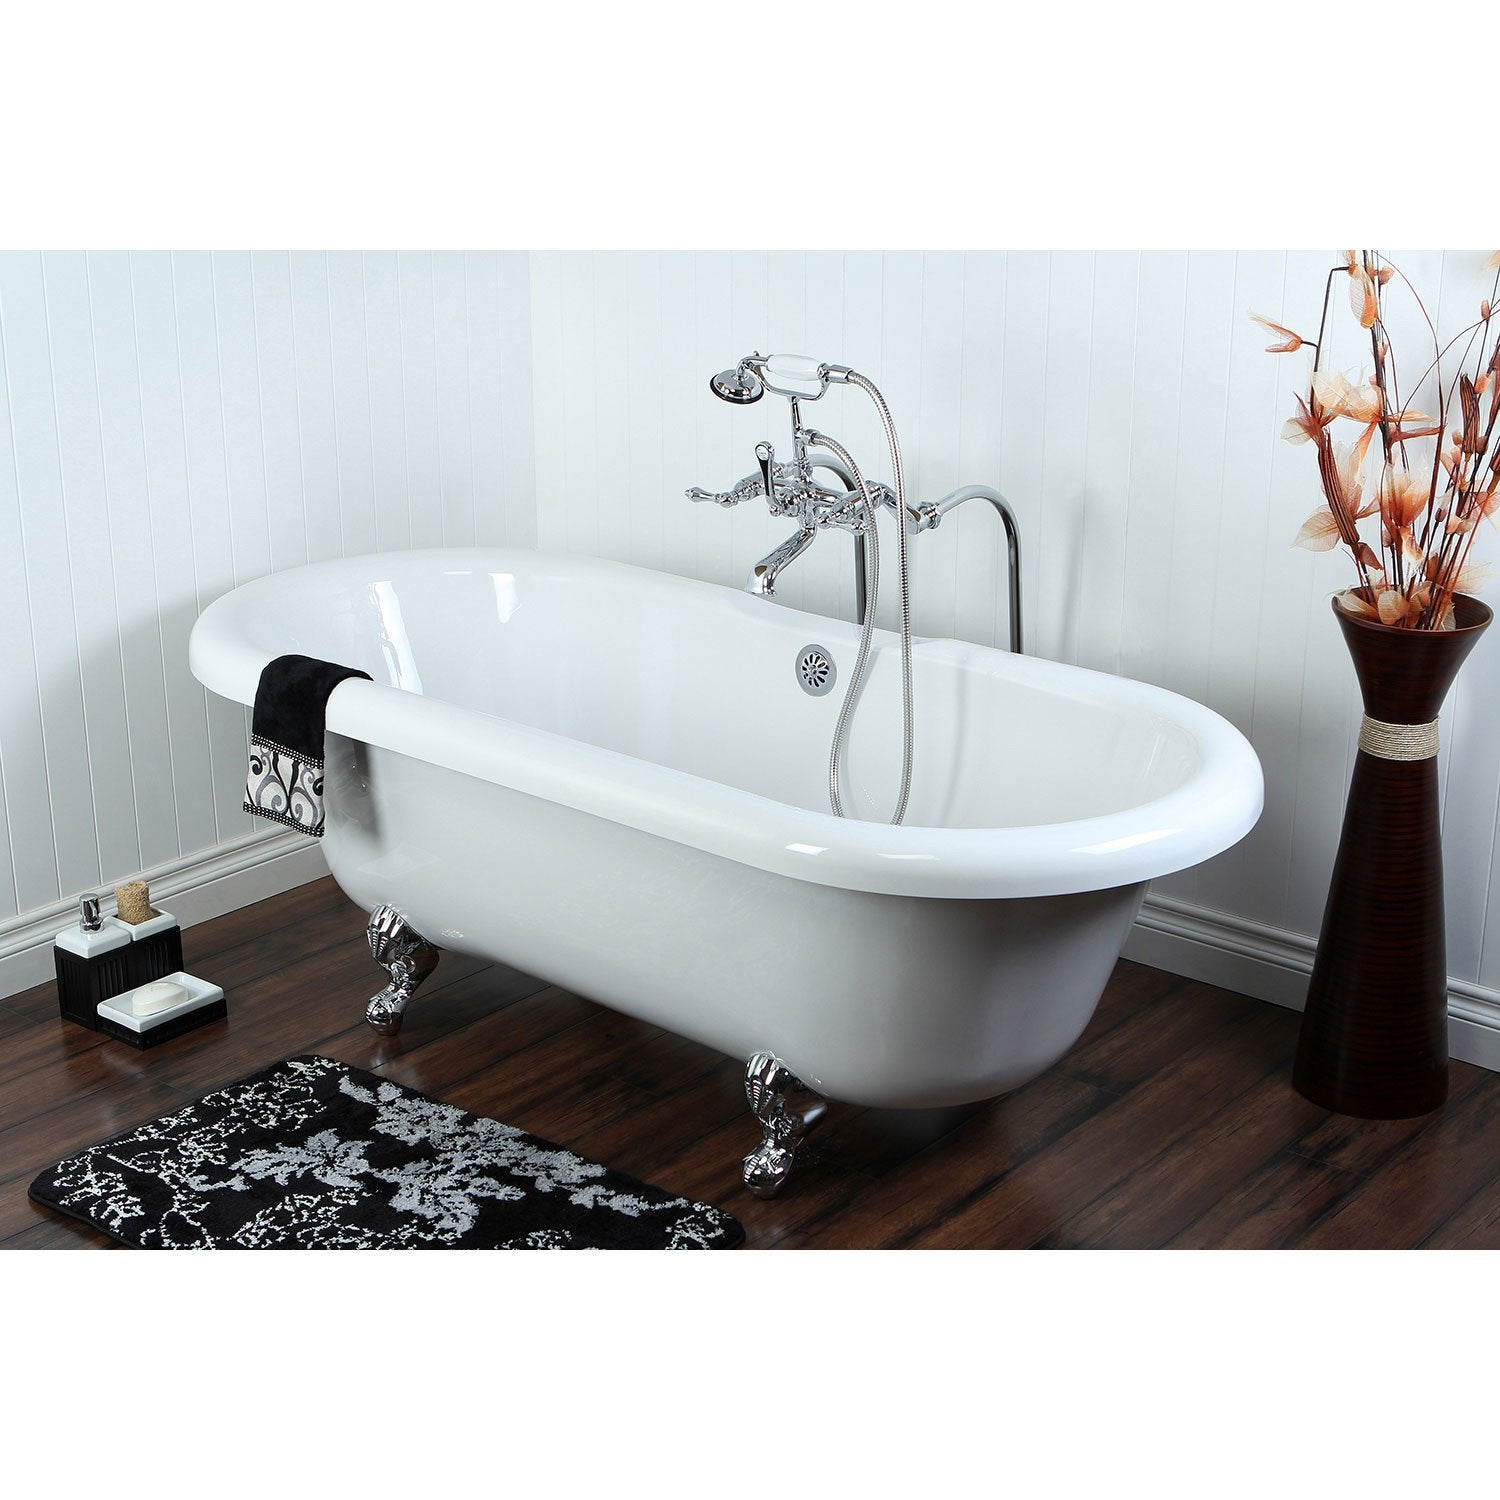 Picture of: 67 Acrylic Clawfoot Tub W Freestanding Chrome Tub Filler Hardware Pac Faucetlist Com